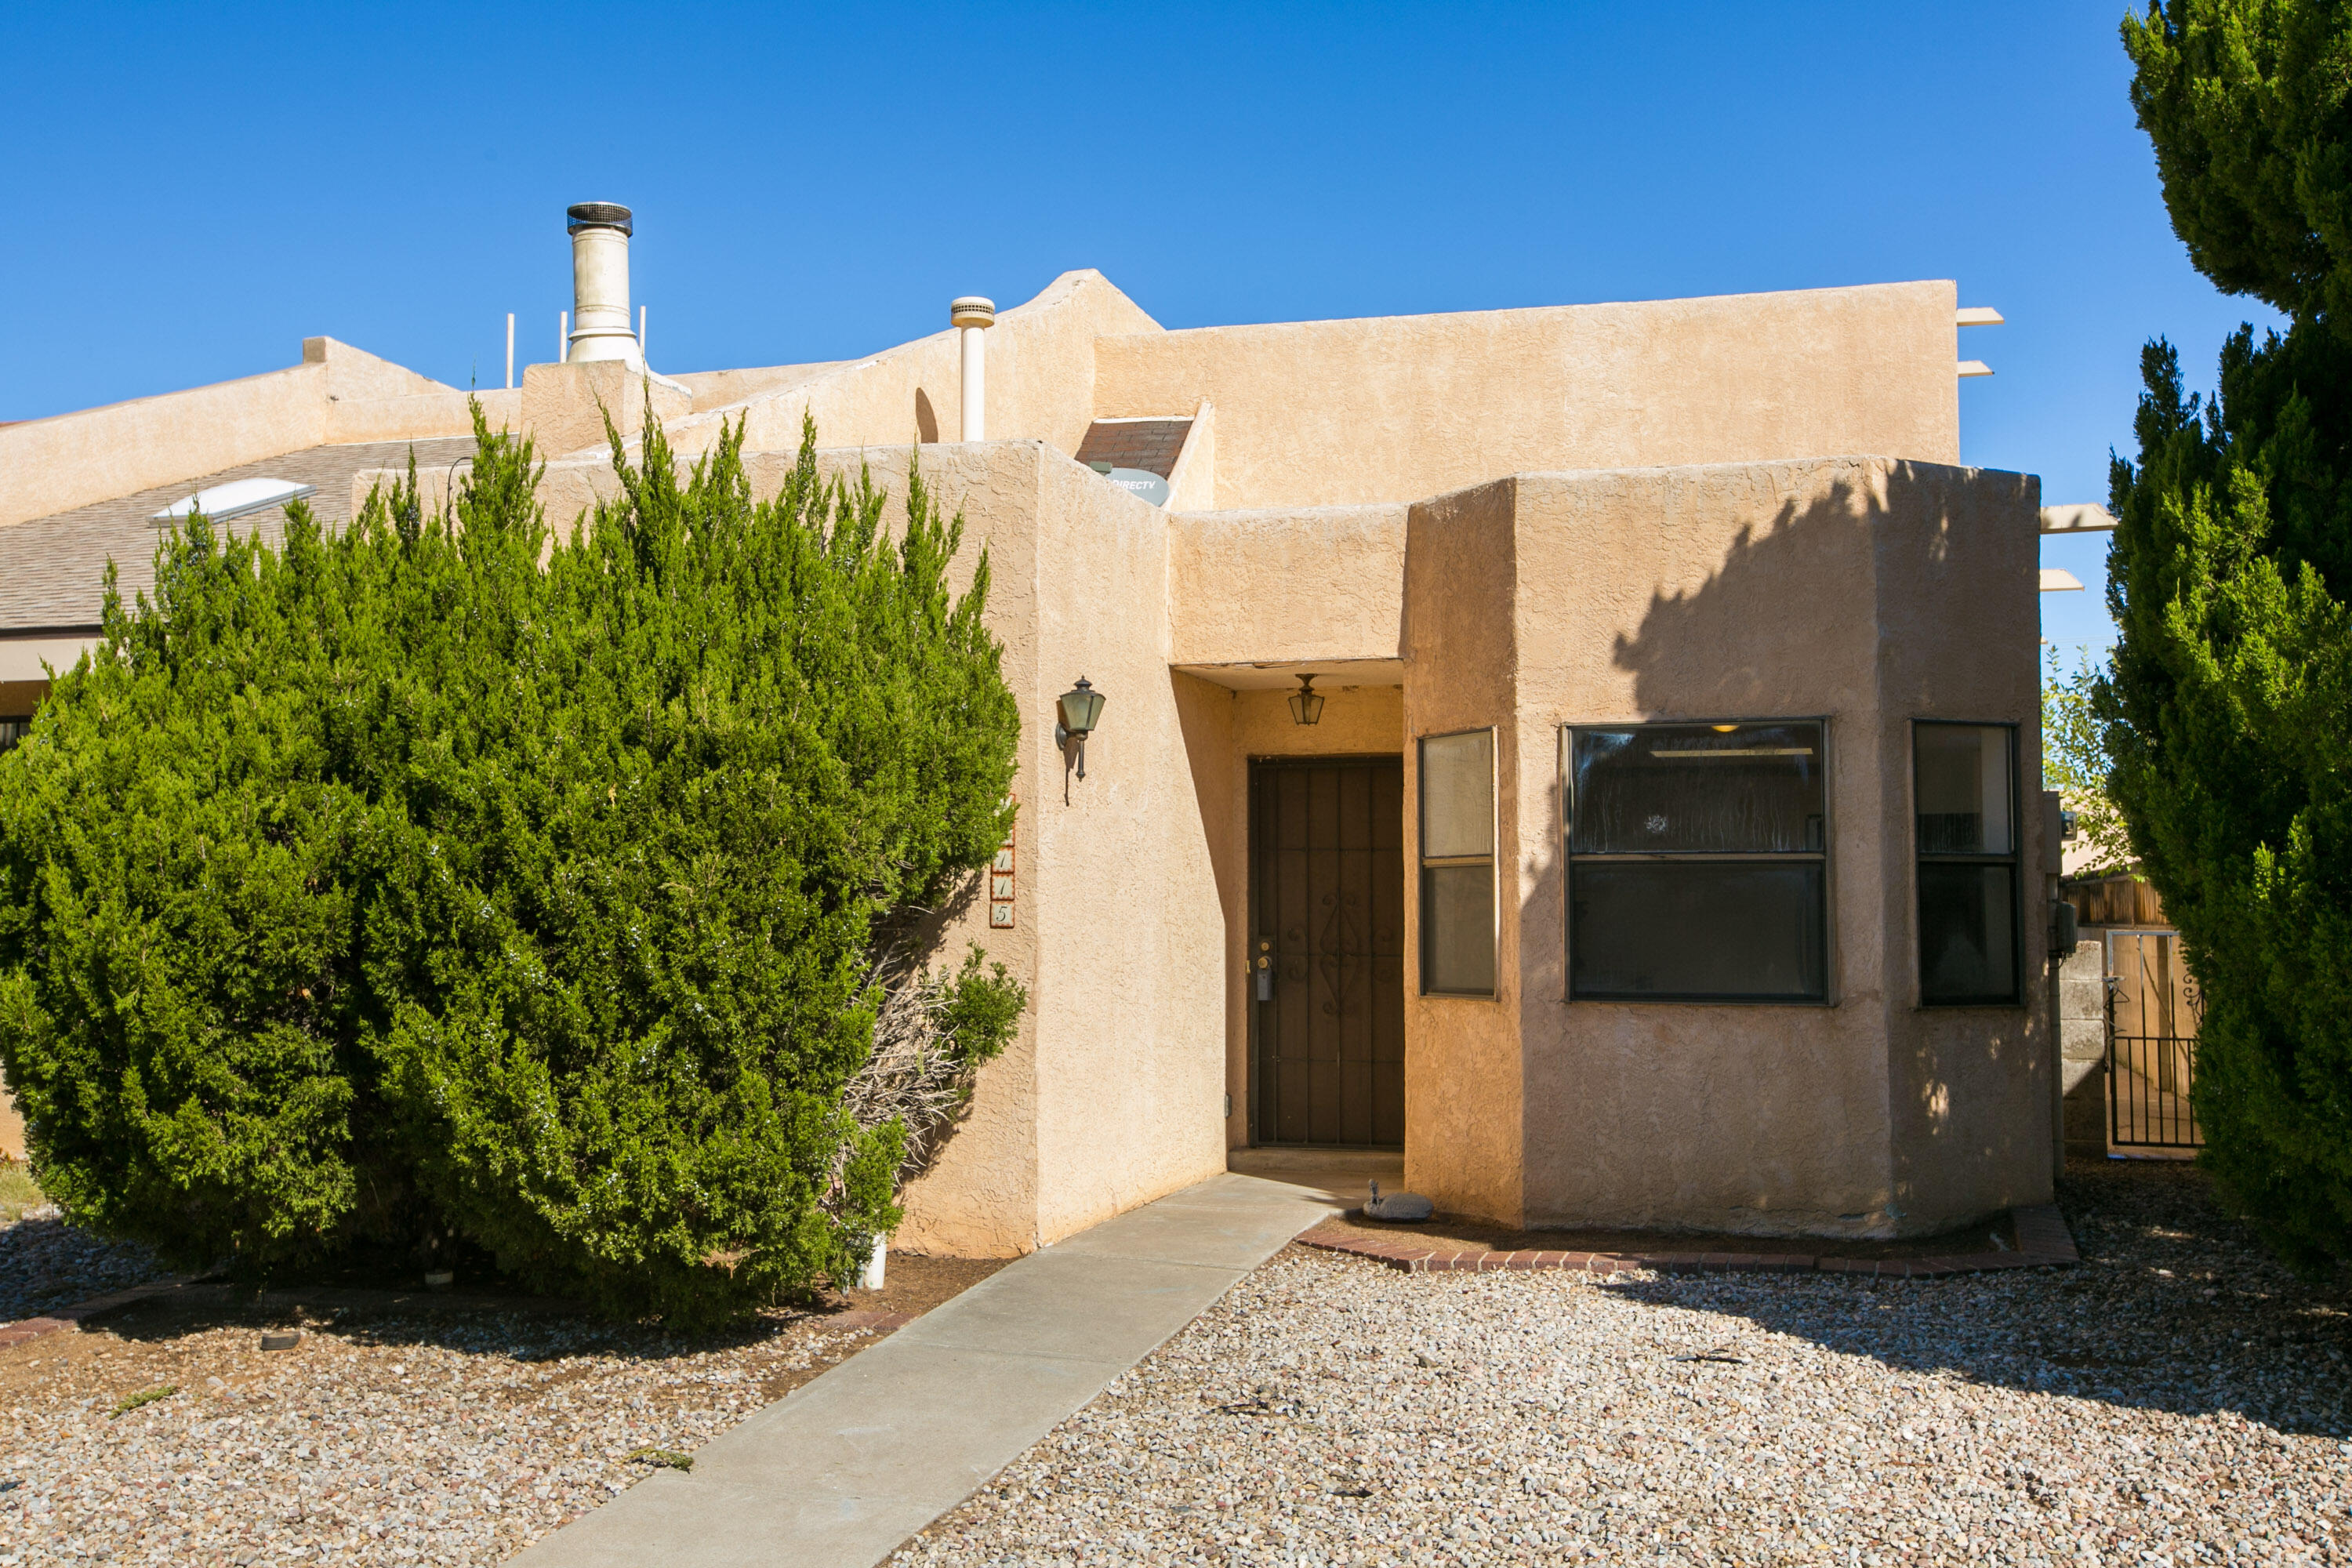 Charming Two bedroom, Two Bath Townhome located in the NE Heights with new Flooring, Freshly painted, New light fixtures. Front windows being replaced. Views from the upstairs balcony of the Sandia's.  Backyard access. Possible to build a detached garage.Take a Look Today!